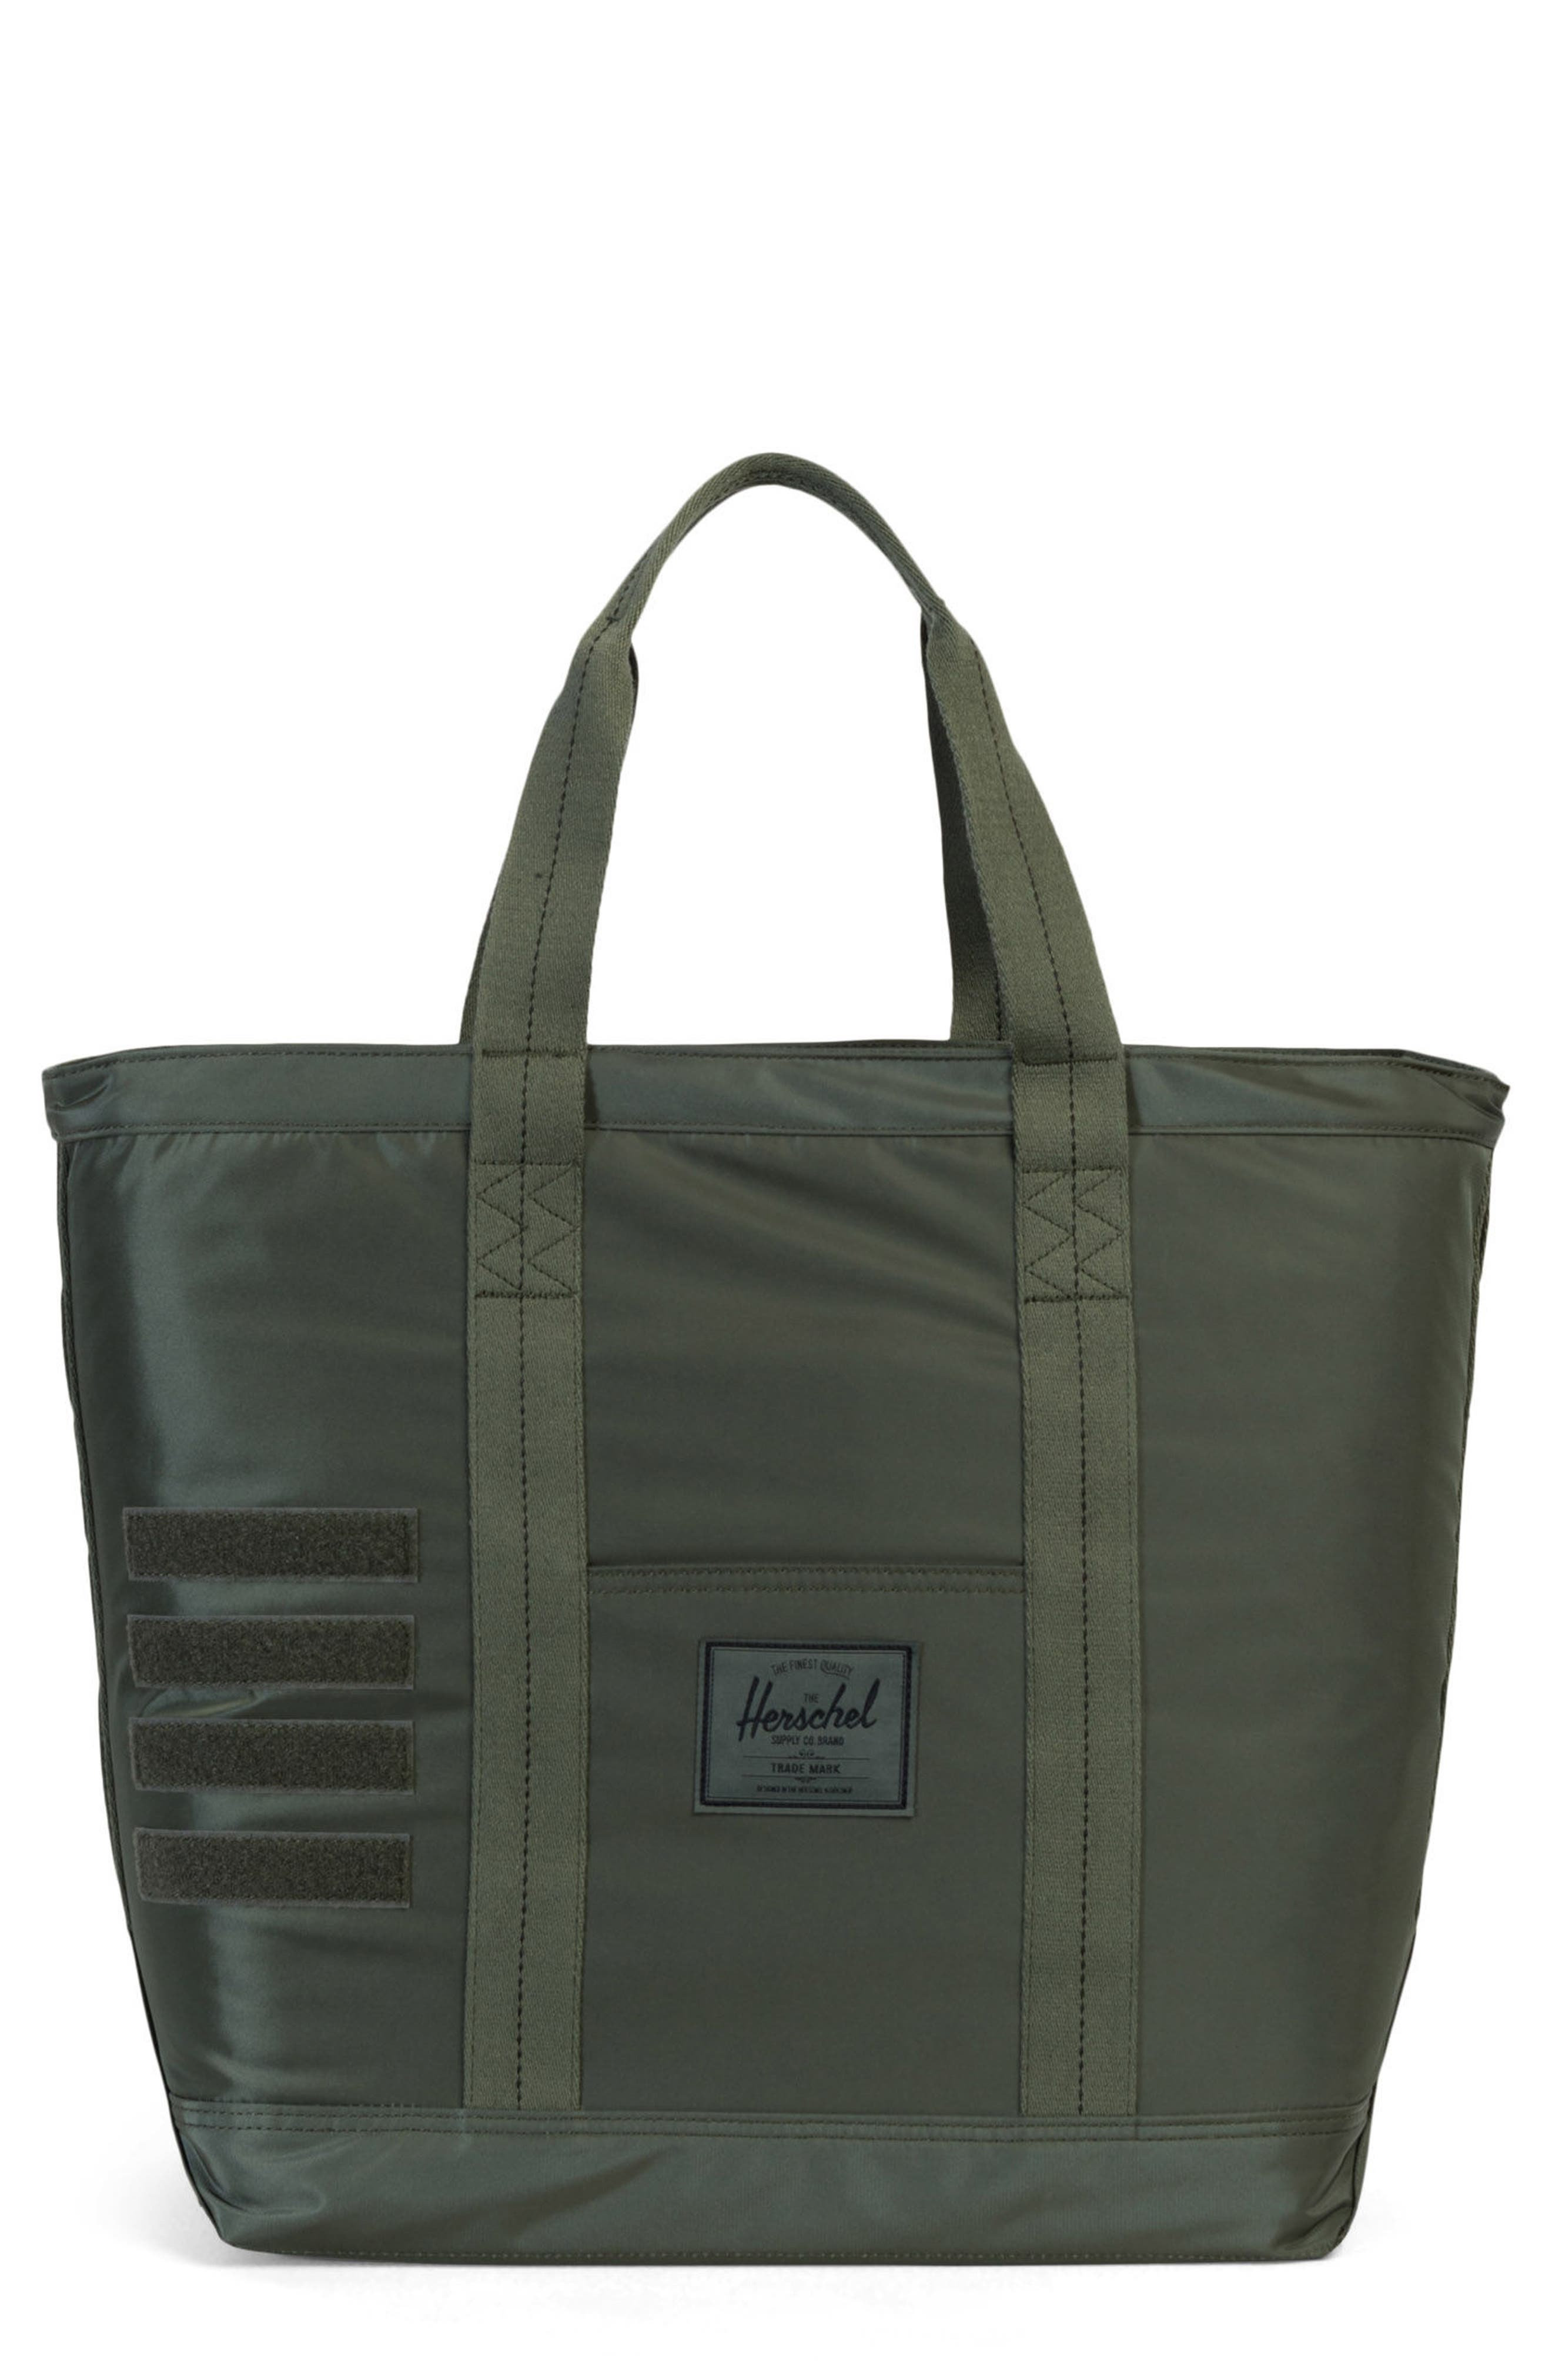 Alternate Image 1 Selected - Herschel Supply Co. Bamfield Surplus Collection Tote Bag